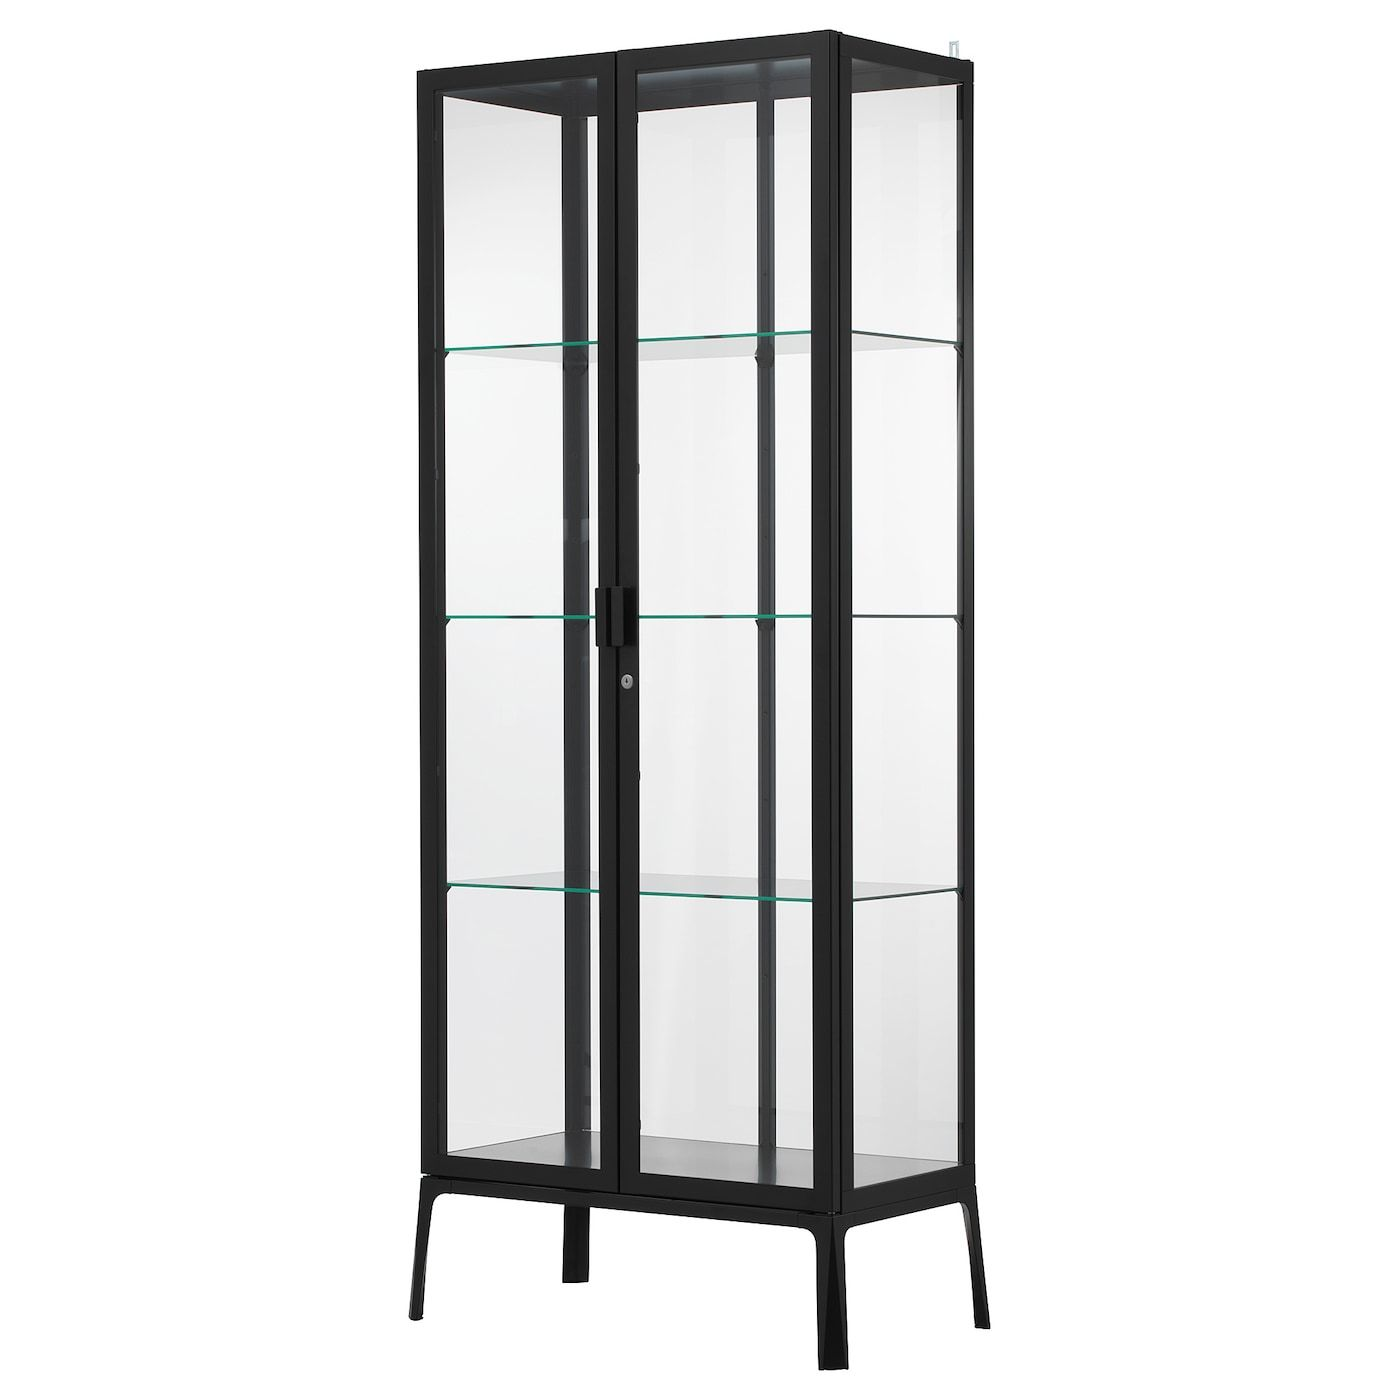 Milsbo Vitrina Antracite 73x175 Cm Ikea Glass Cabinet Doors Glass Cabinets Display Glass Shelves